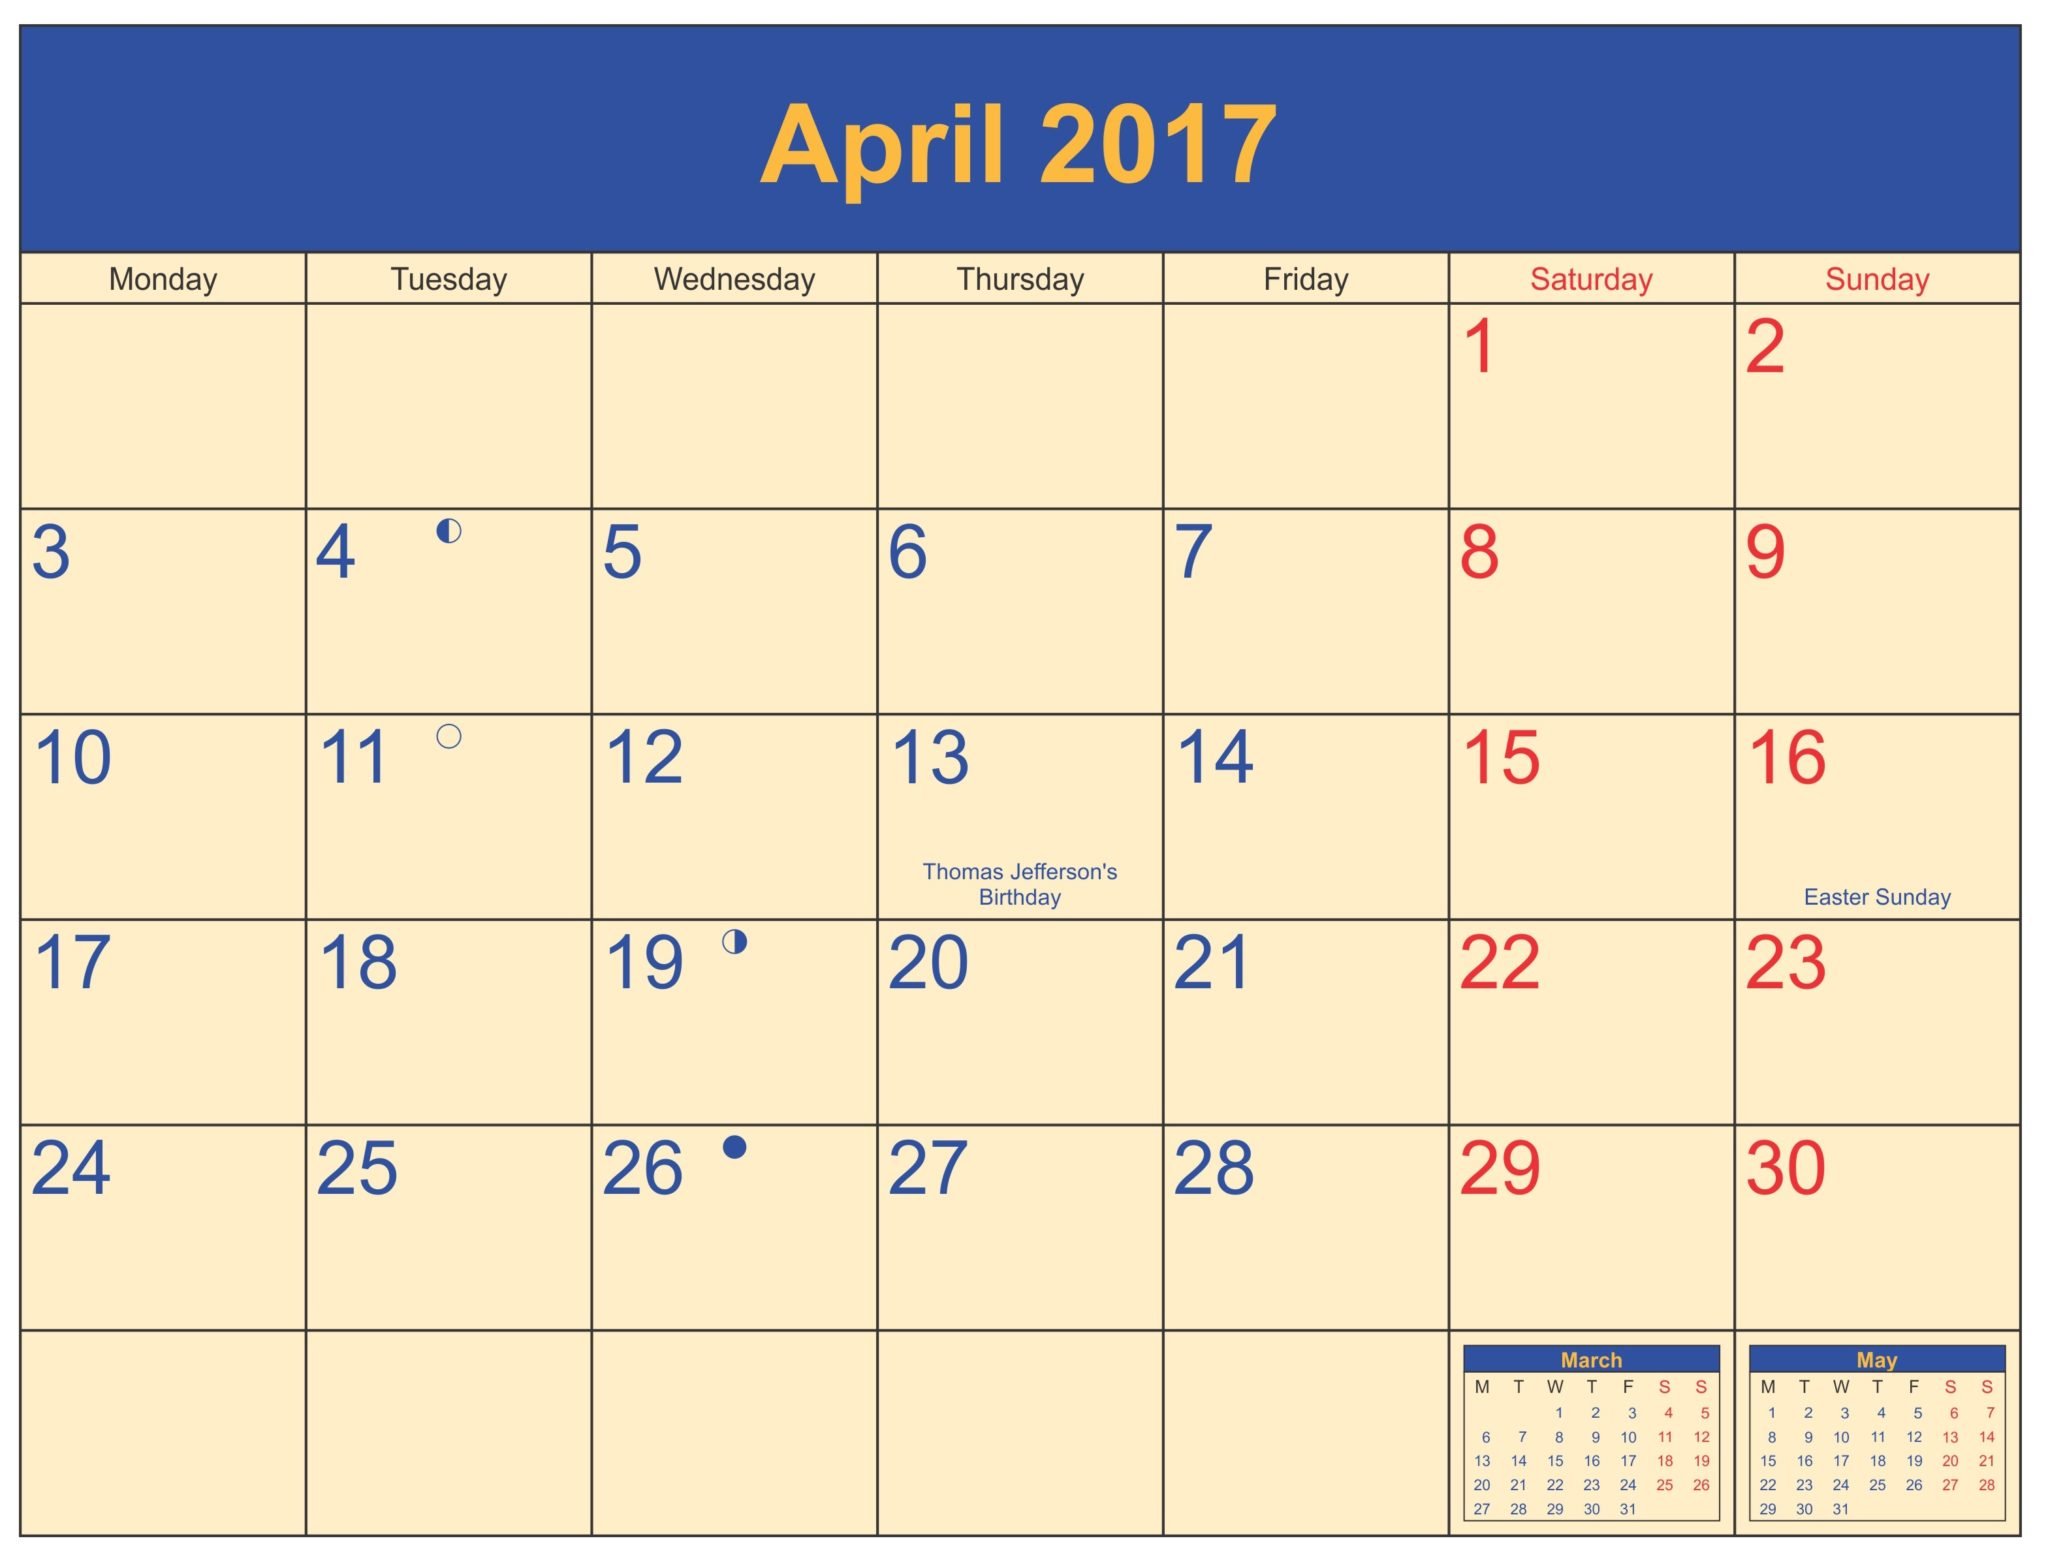 April 2017 Calendar Document